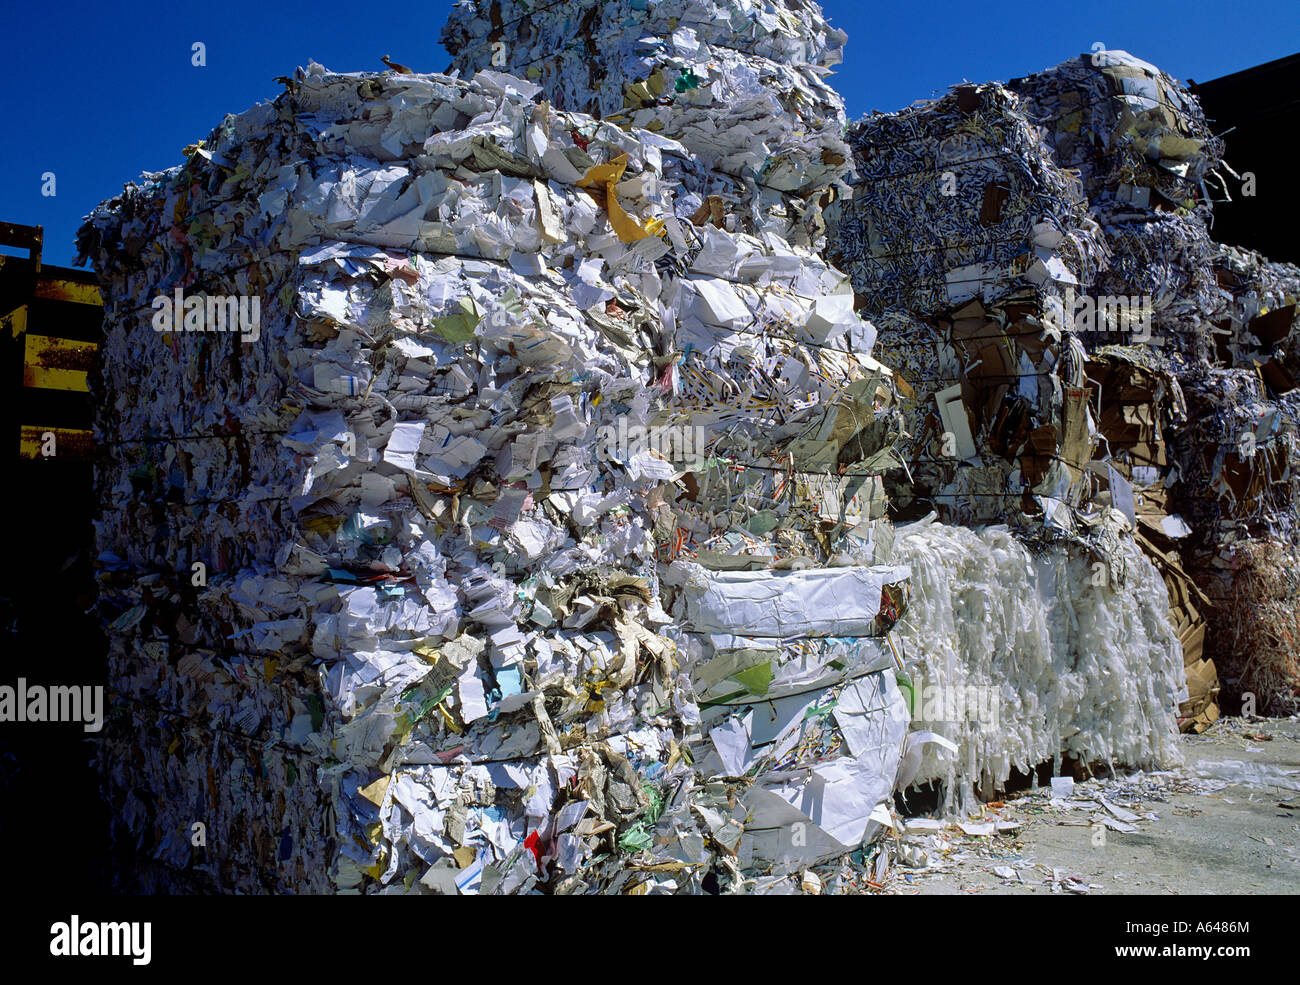 waste paper at collecting point - Stock Image